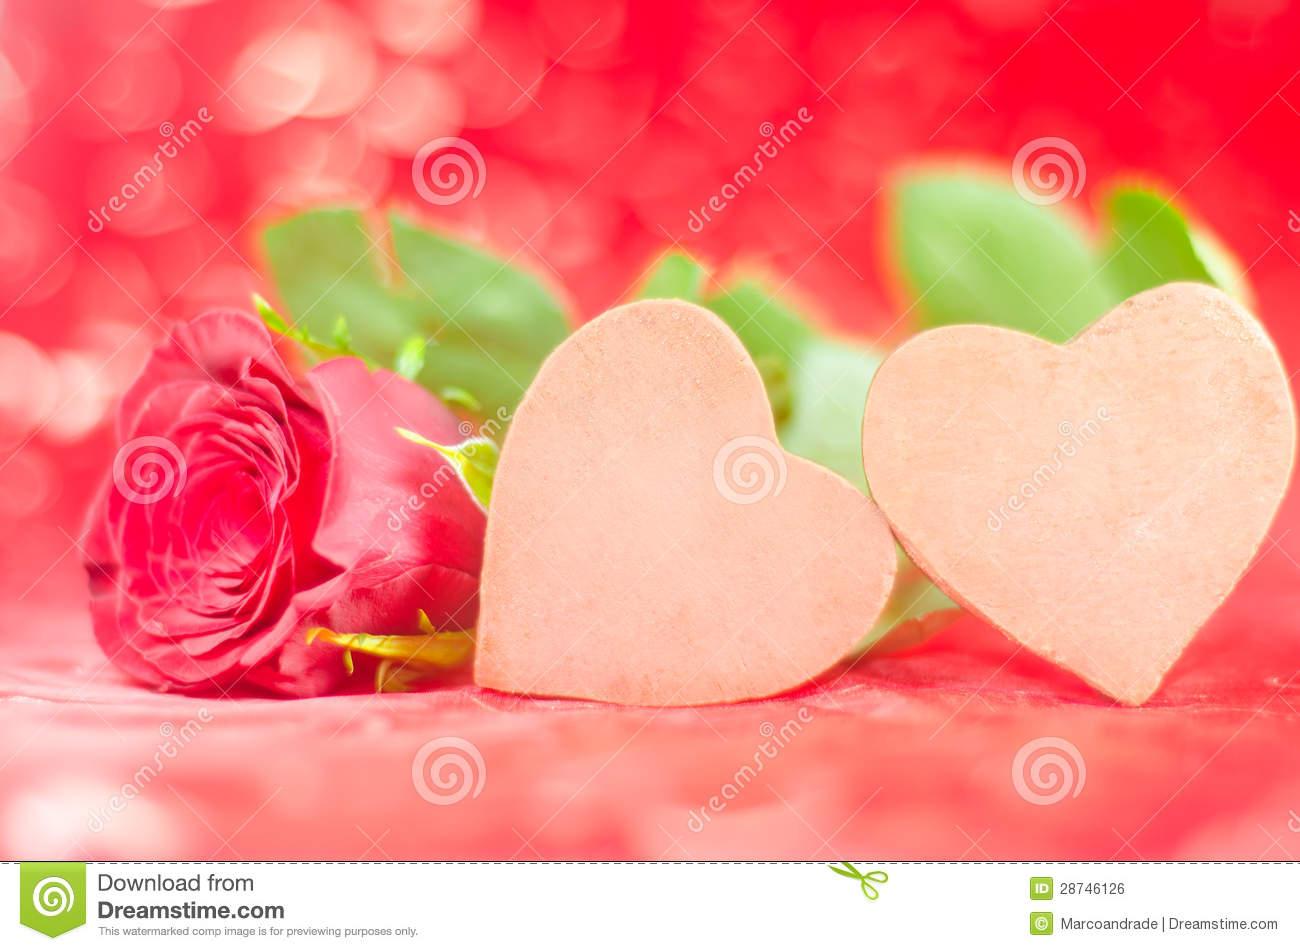 Two Chocolate Hearts With Rose In Lovely Background Stock Photo